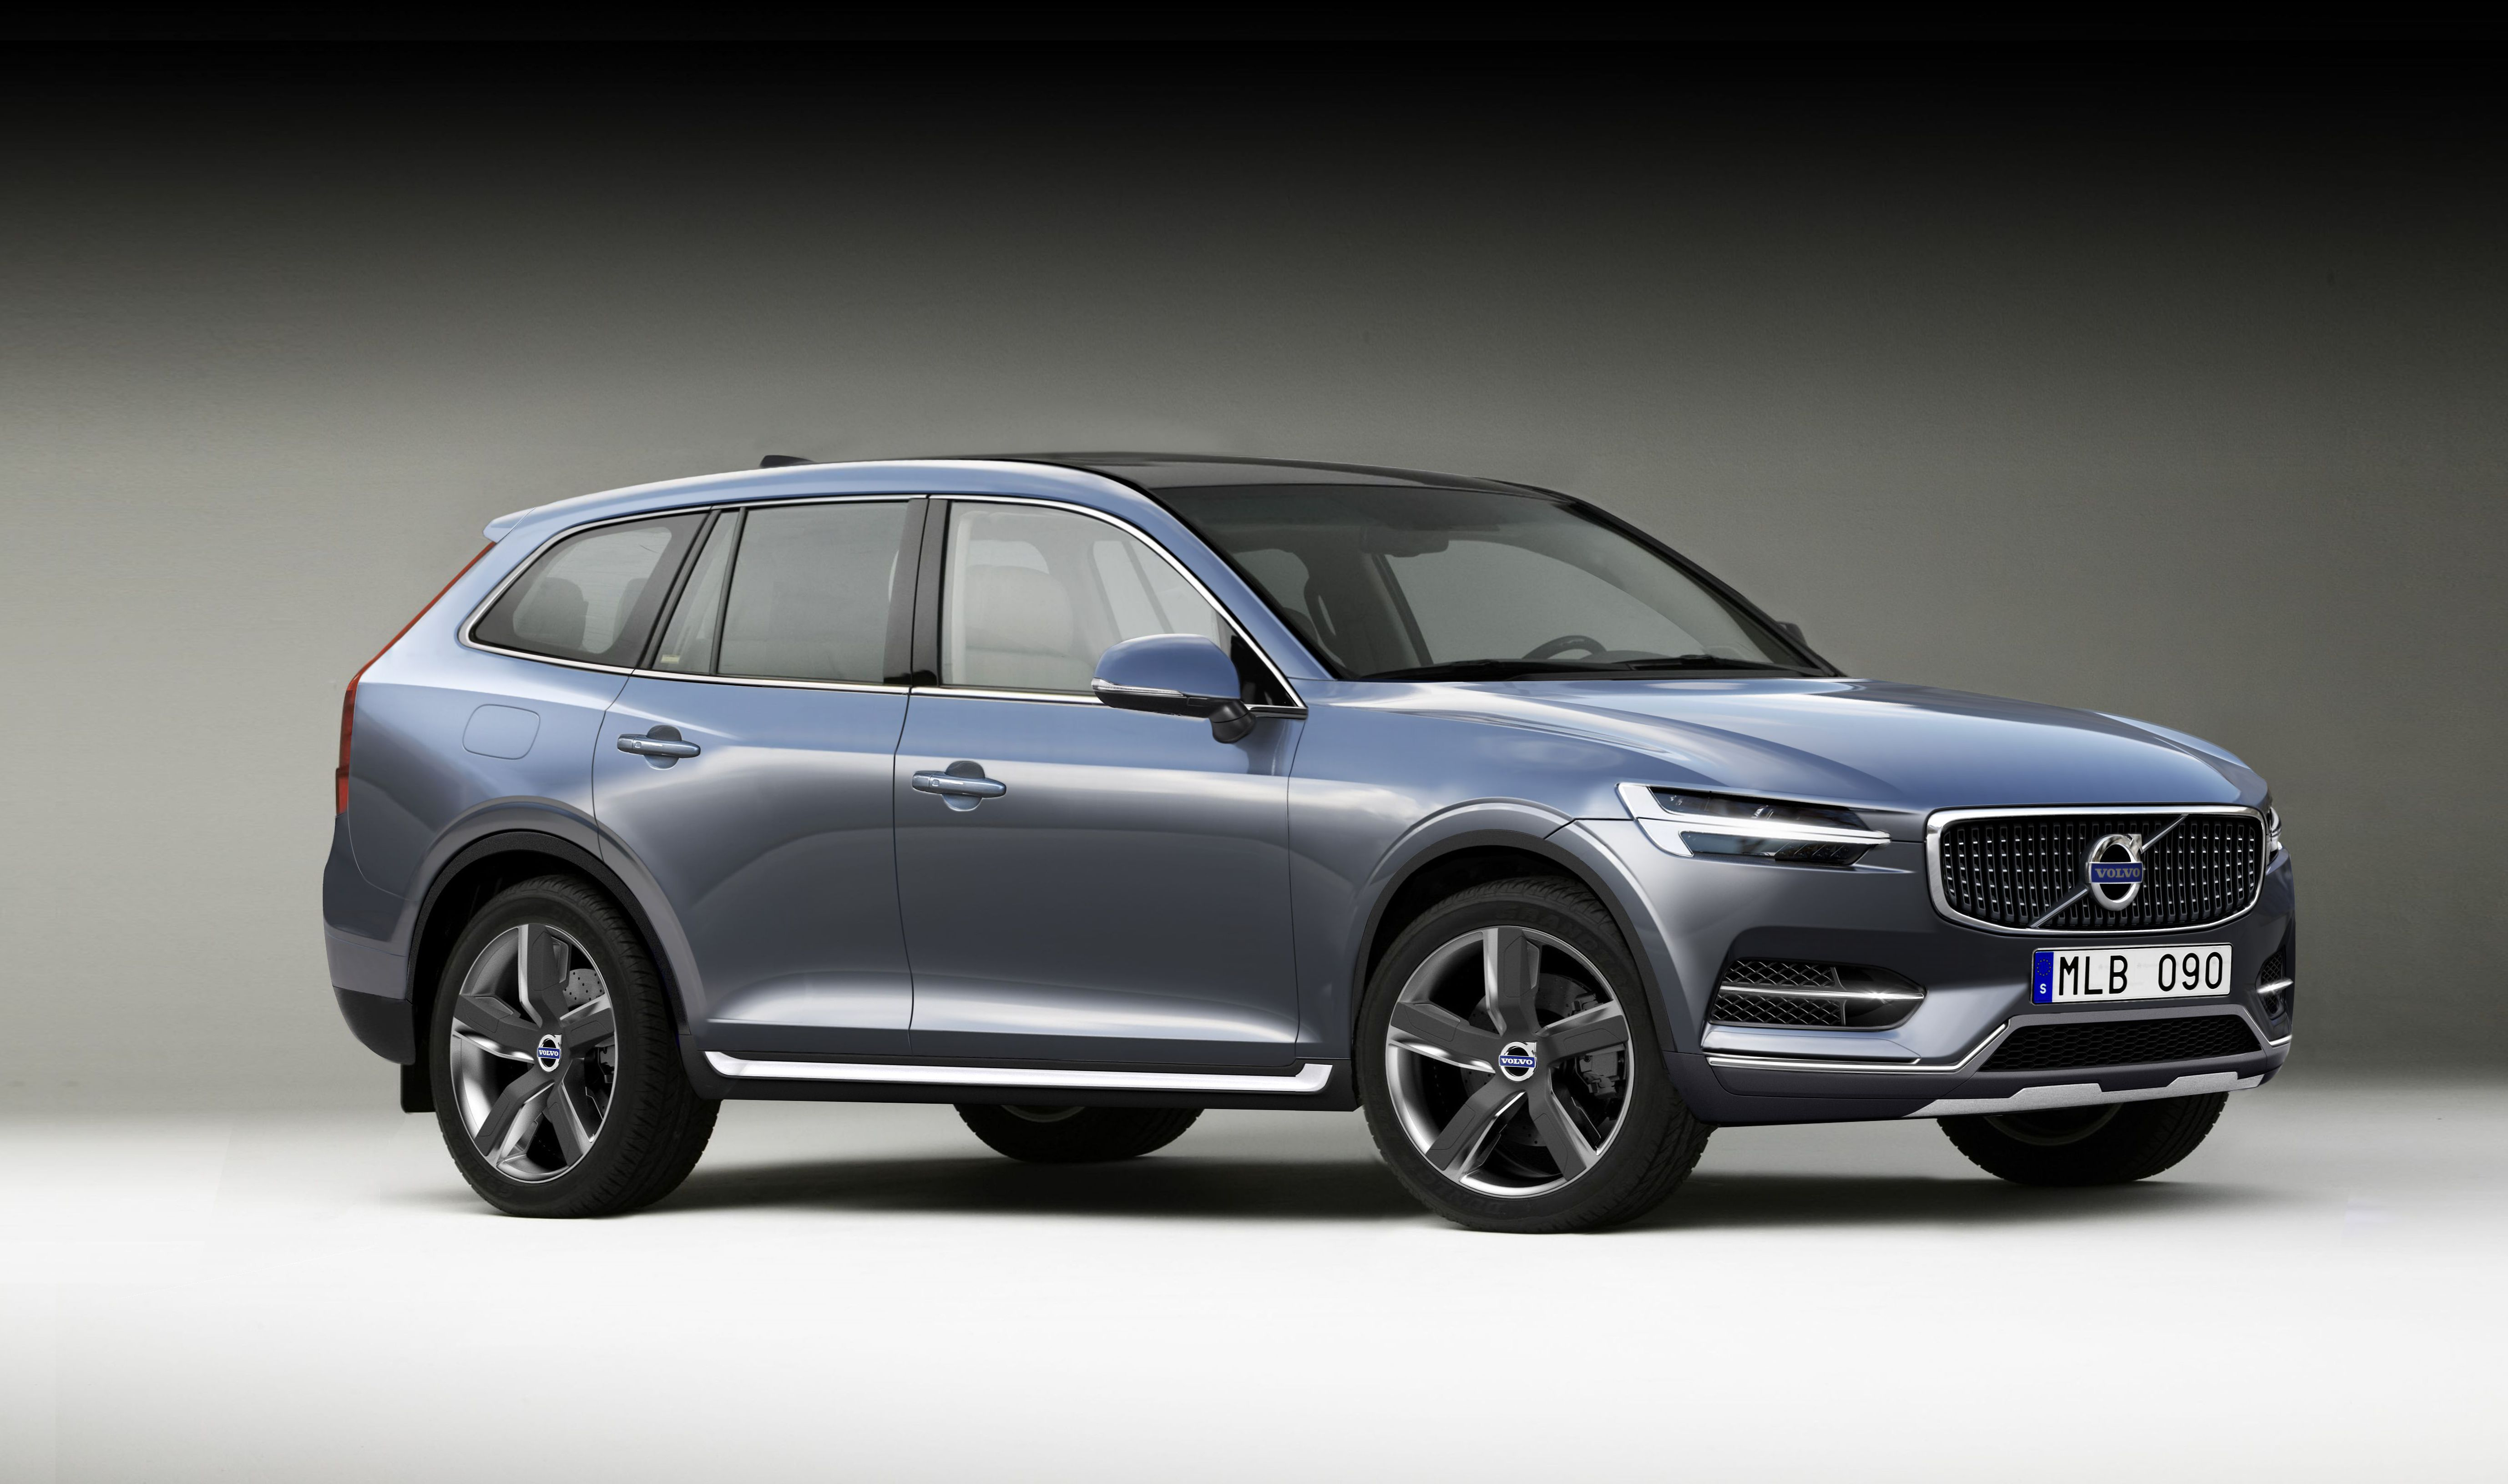 volvo xc90 release first model produced under chinese ownership will be revealed next week in. Black Bedroom Furniture Sets. Home Design Ideas